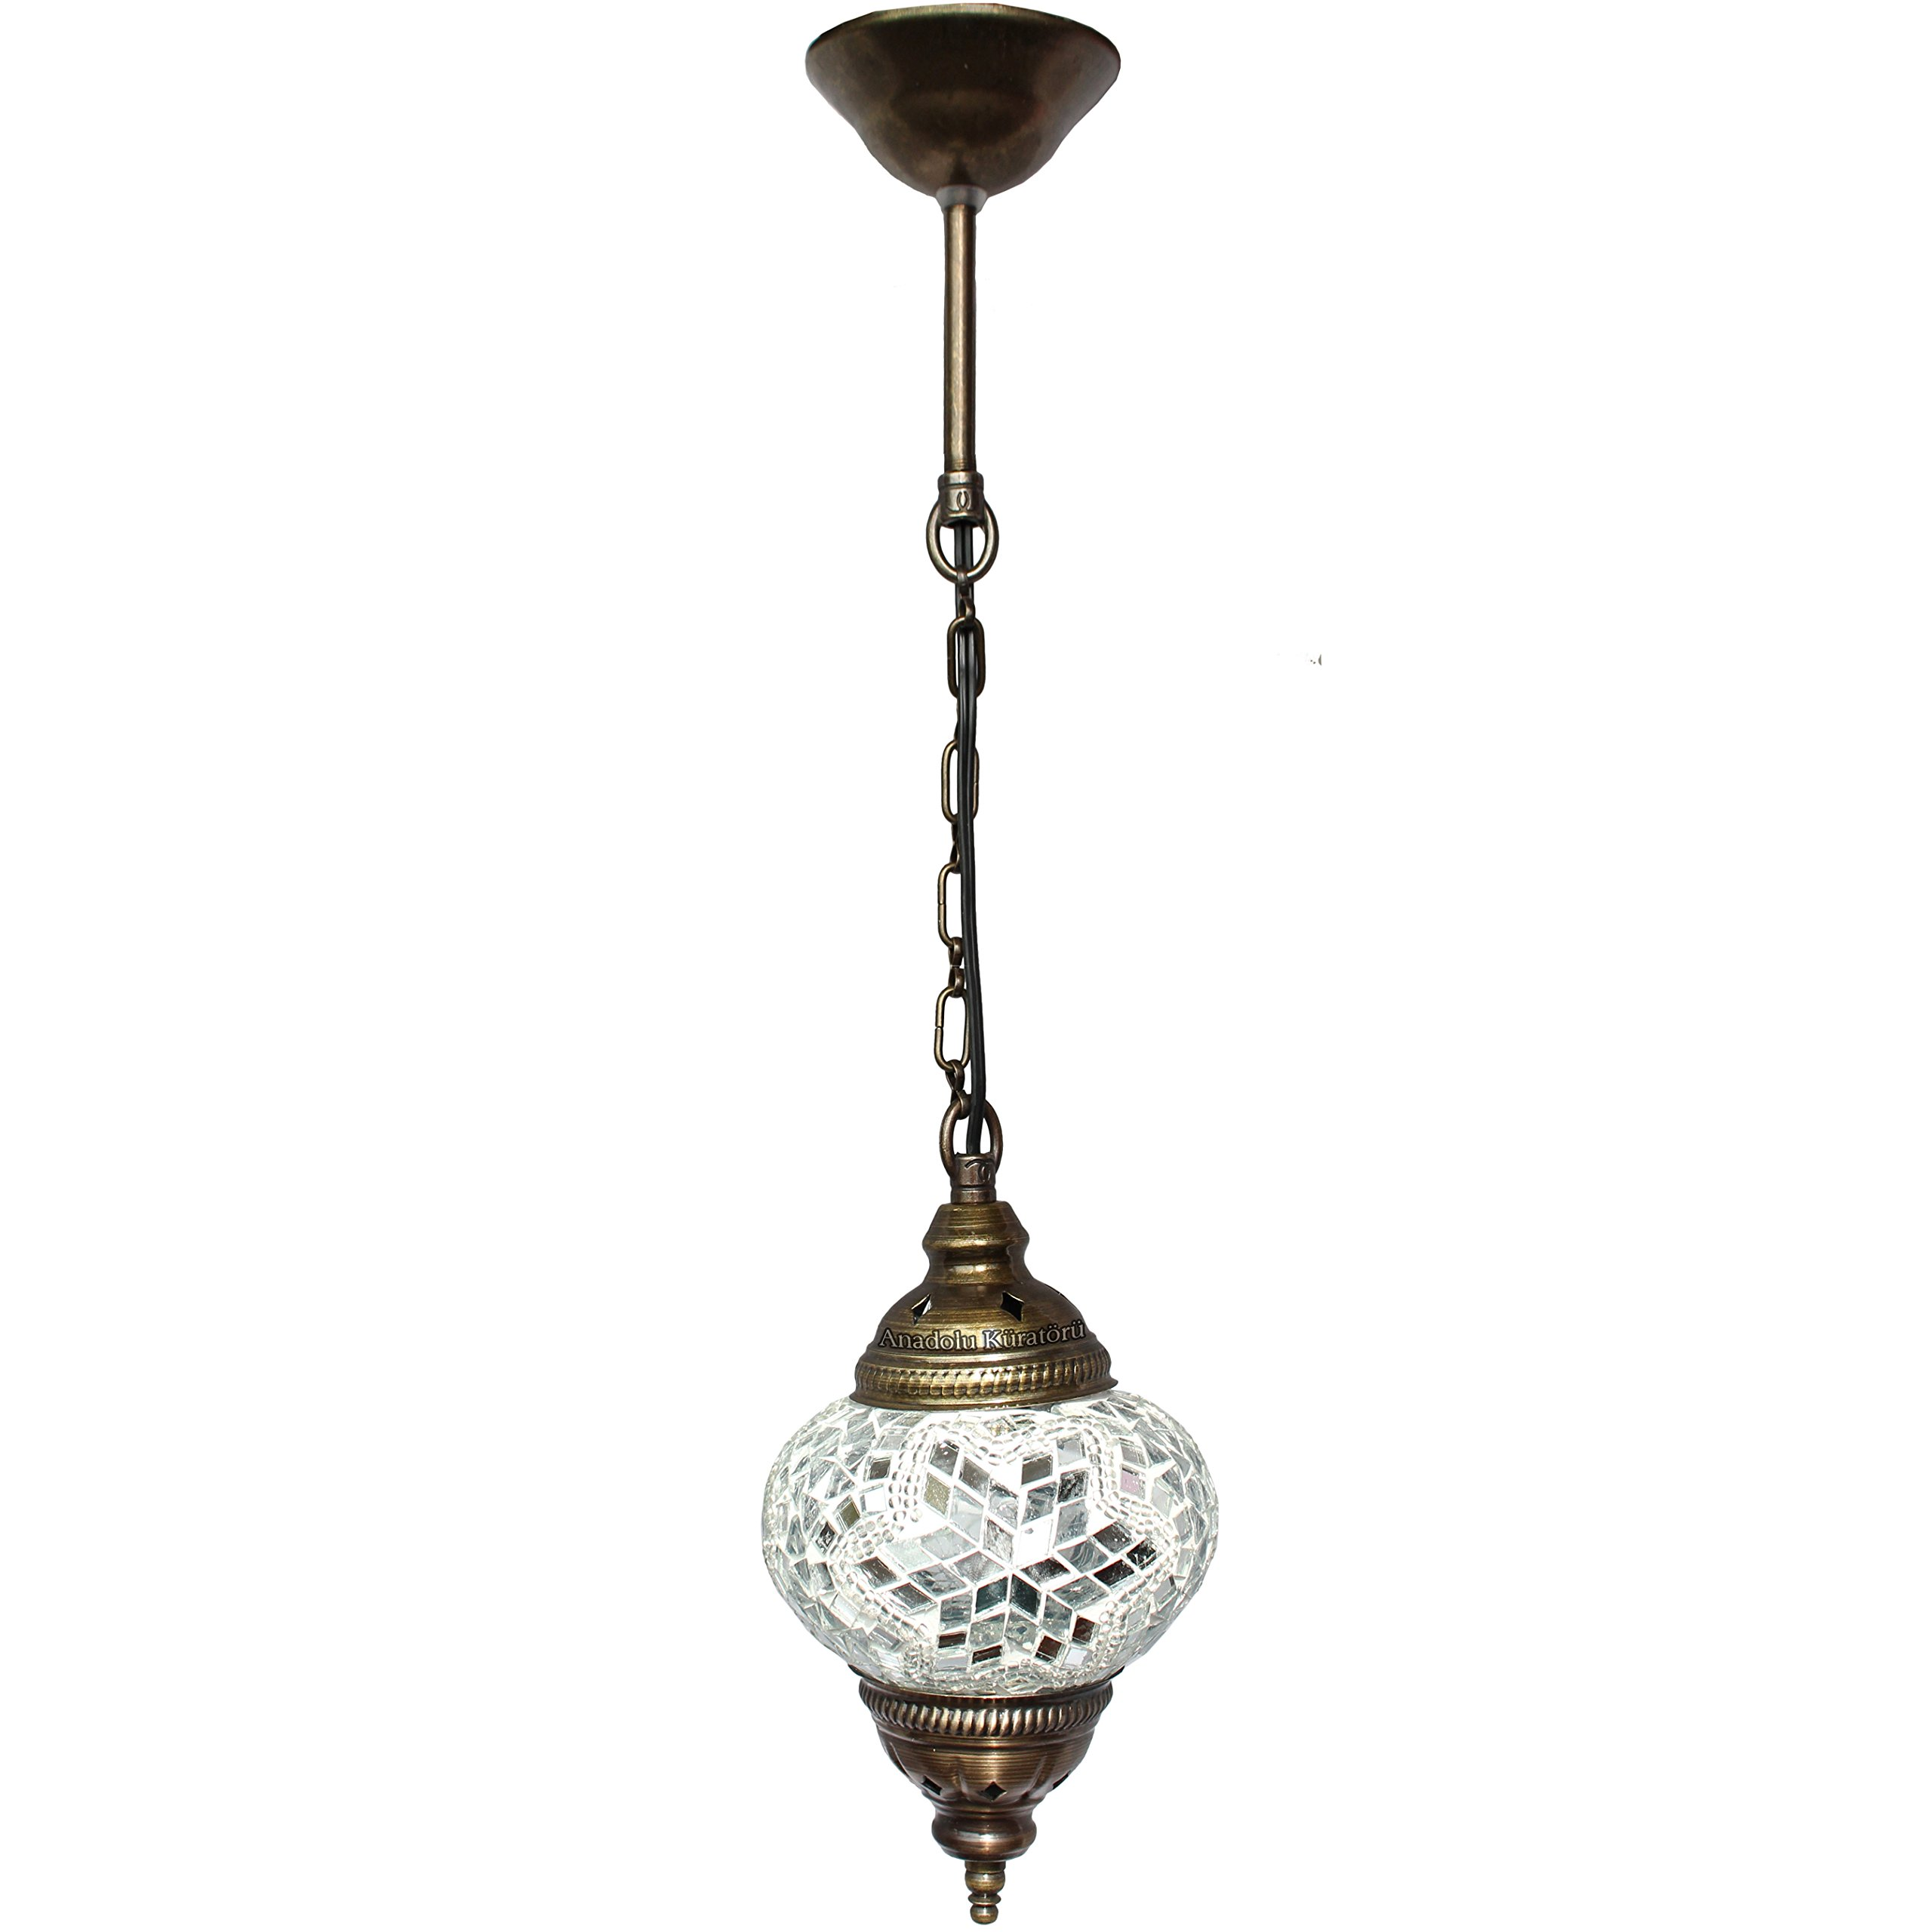 Ceiling Pendant Fixtures, Mosaic Lamps, Turkish Lamps, Hanging Lights, Moroccan Lanterns, Color Glass, Size 2, White, Arabian Nights by Leyla's Lanterns